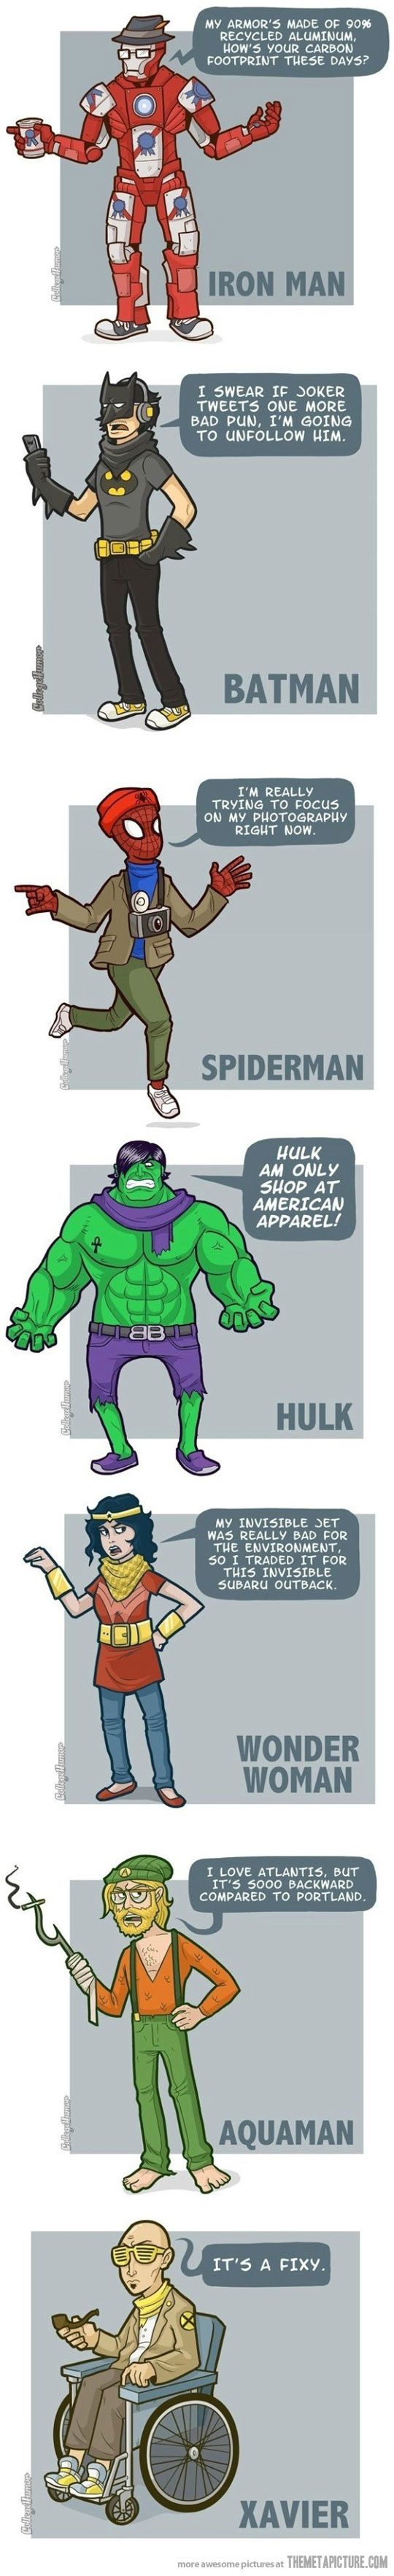 funny-hipster-superheroes-avengers